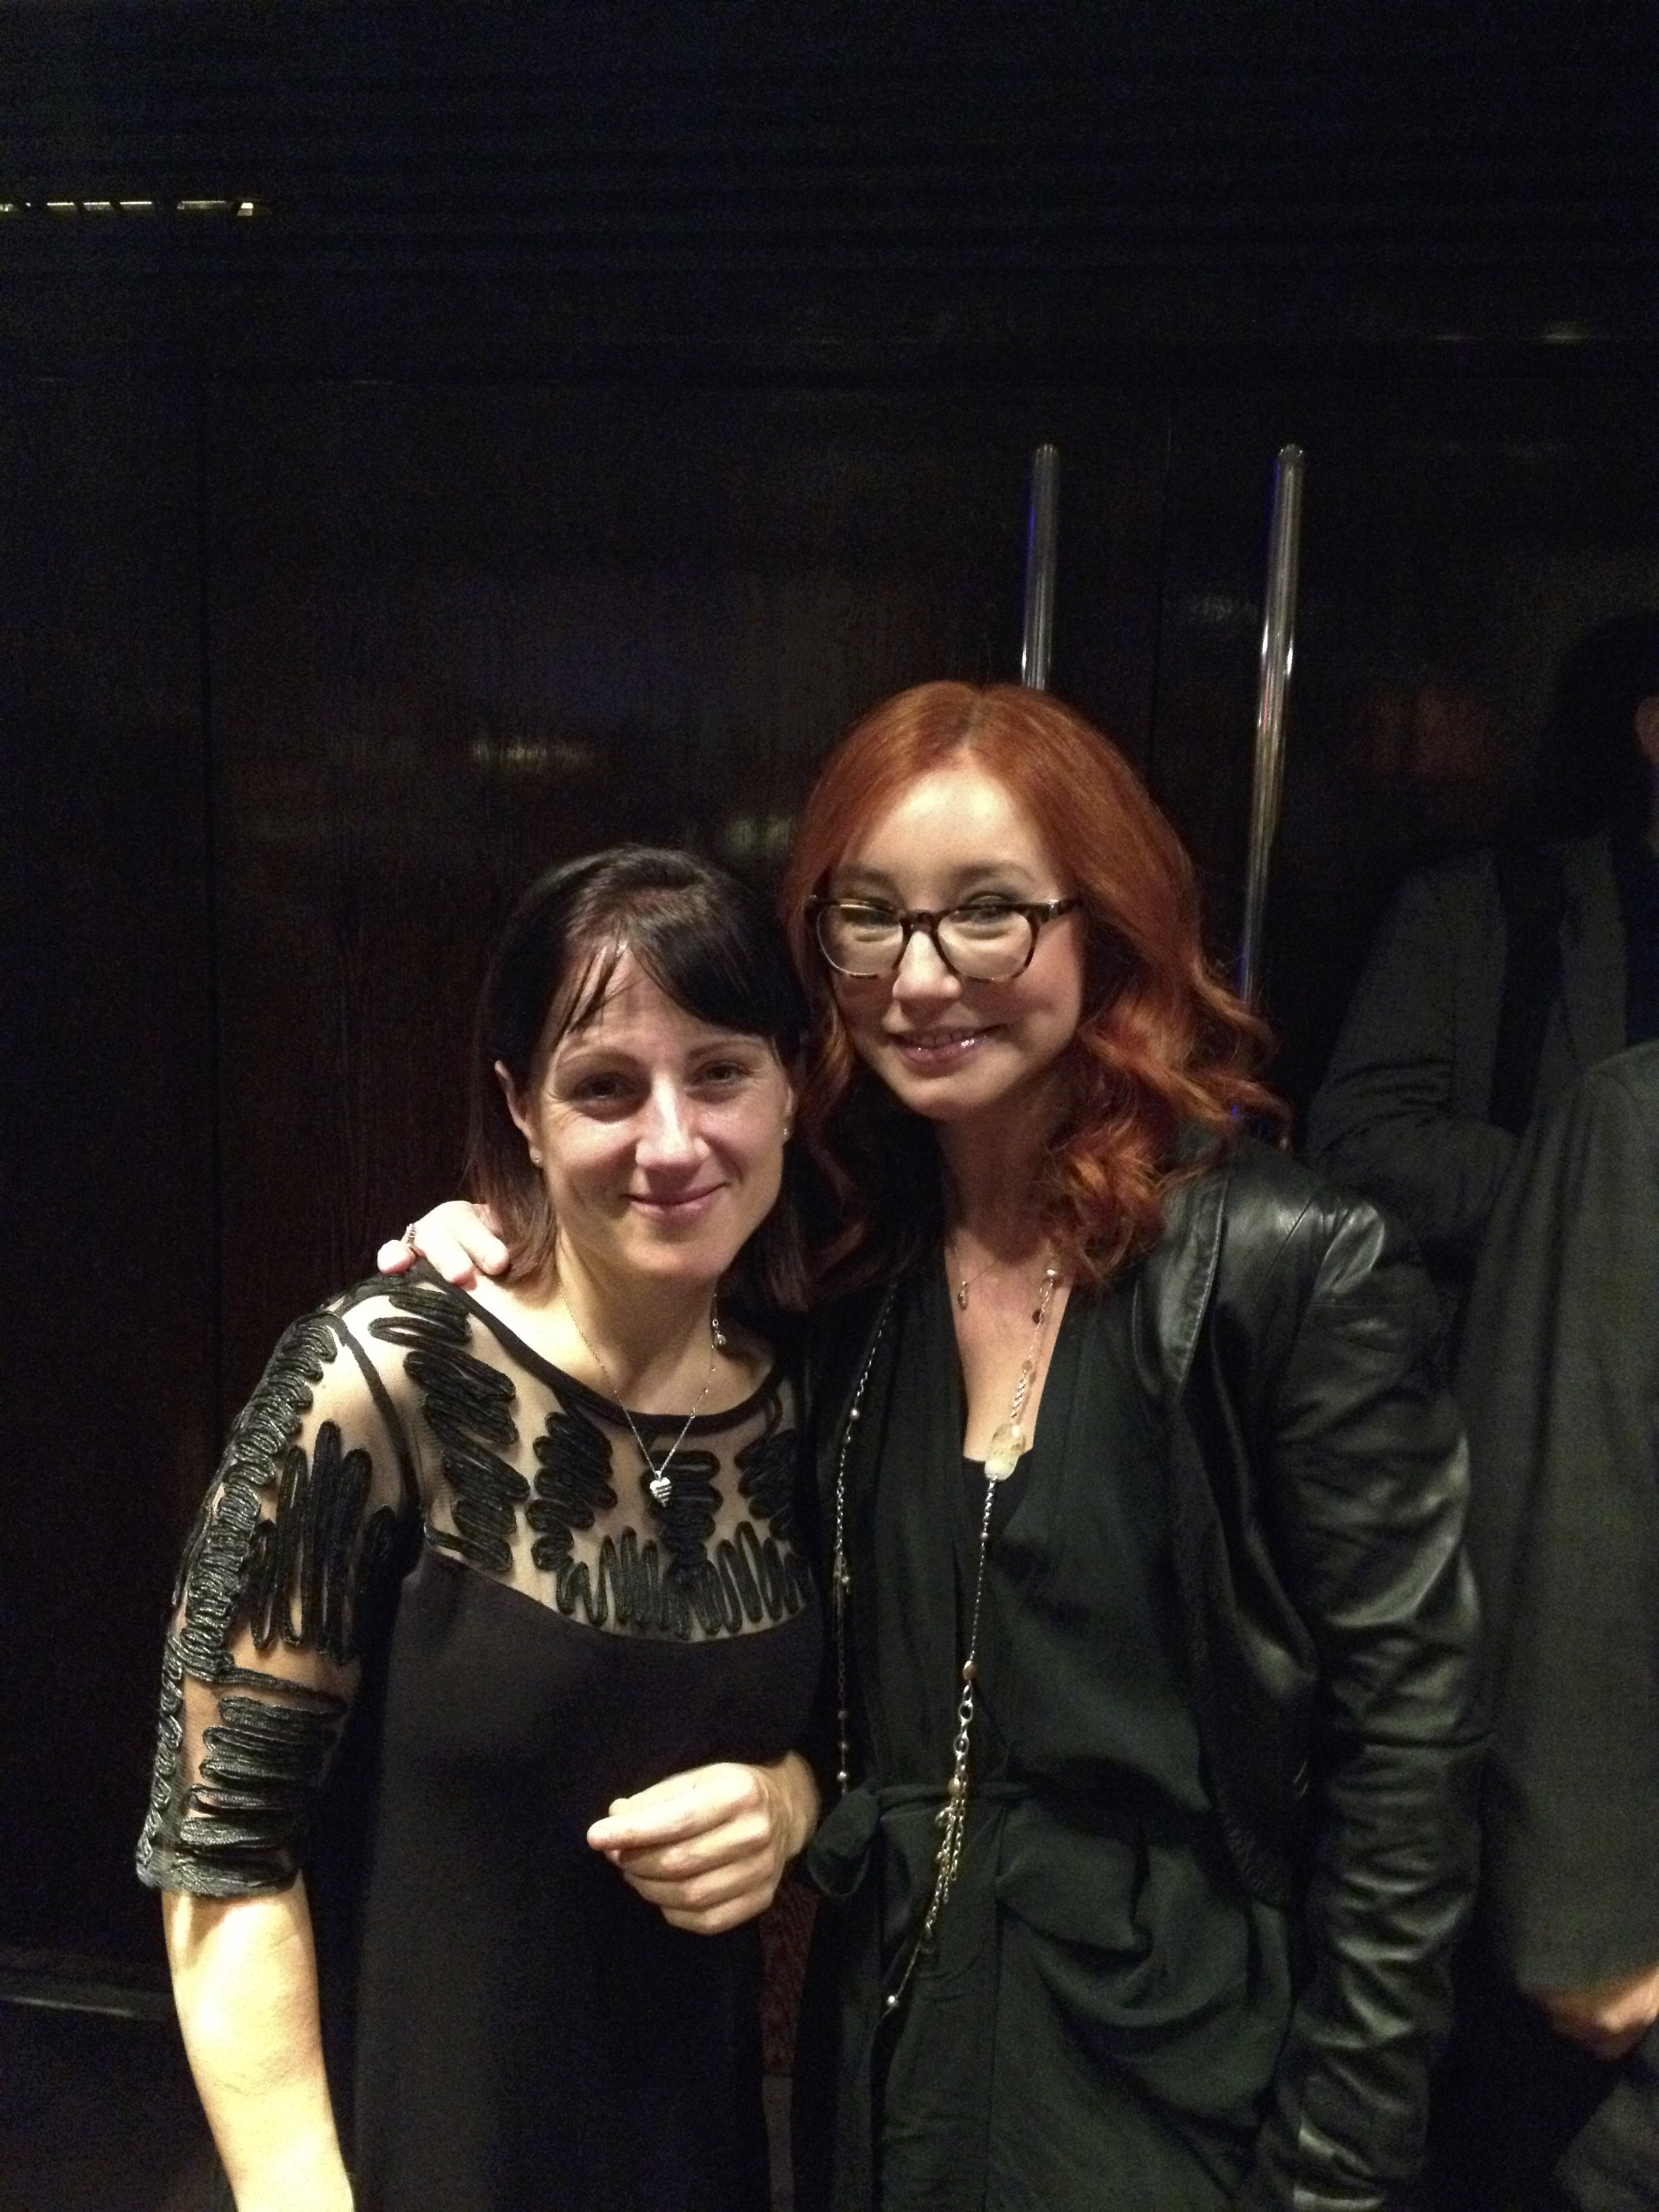 Katherine Rockhill (Amos - Light Princess Pianist) and Tori Amos - Light Princess